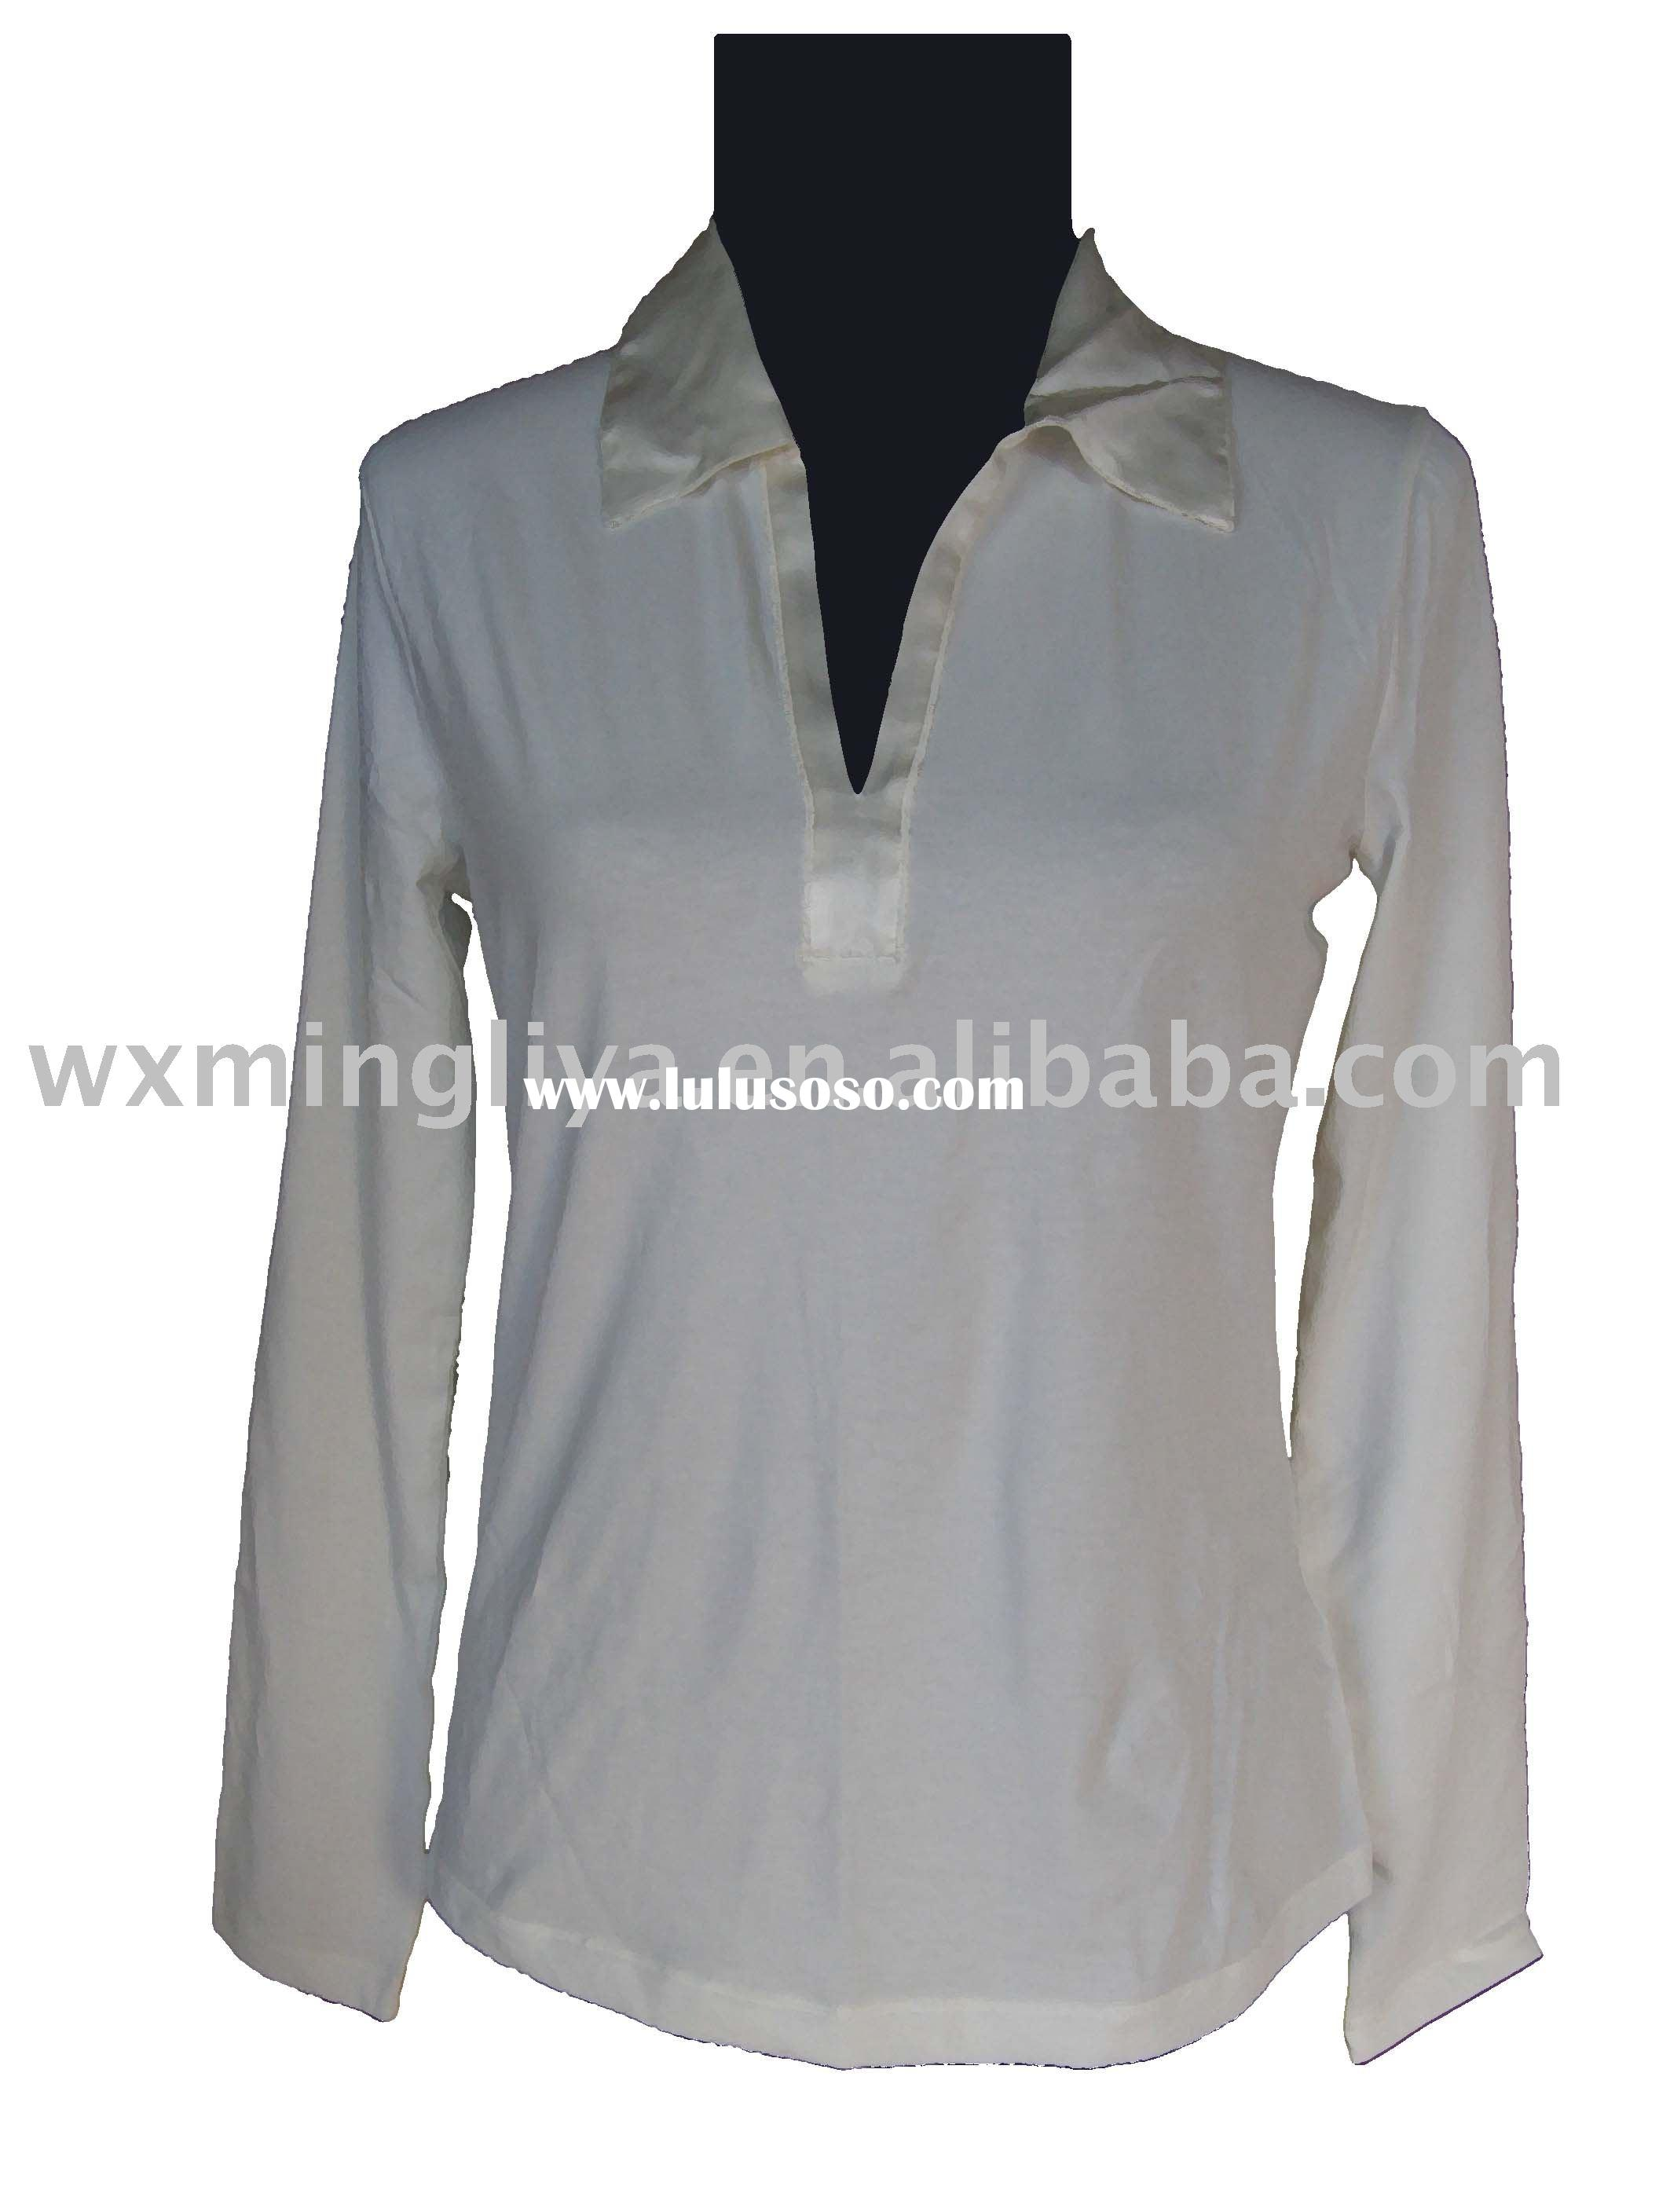 94% Cotton 6% Spandex Polo Collar Long Sleeve Sliver-gray  Shirt